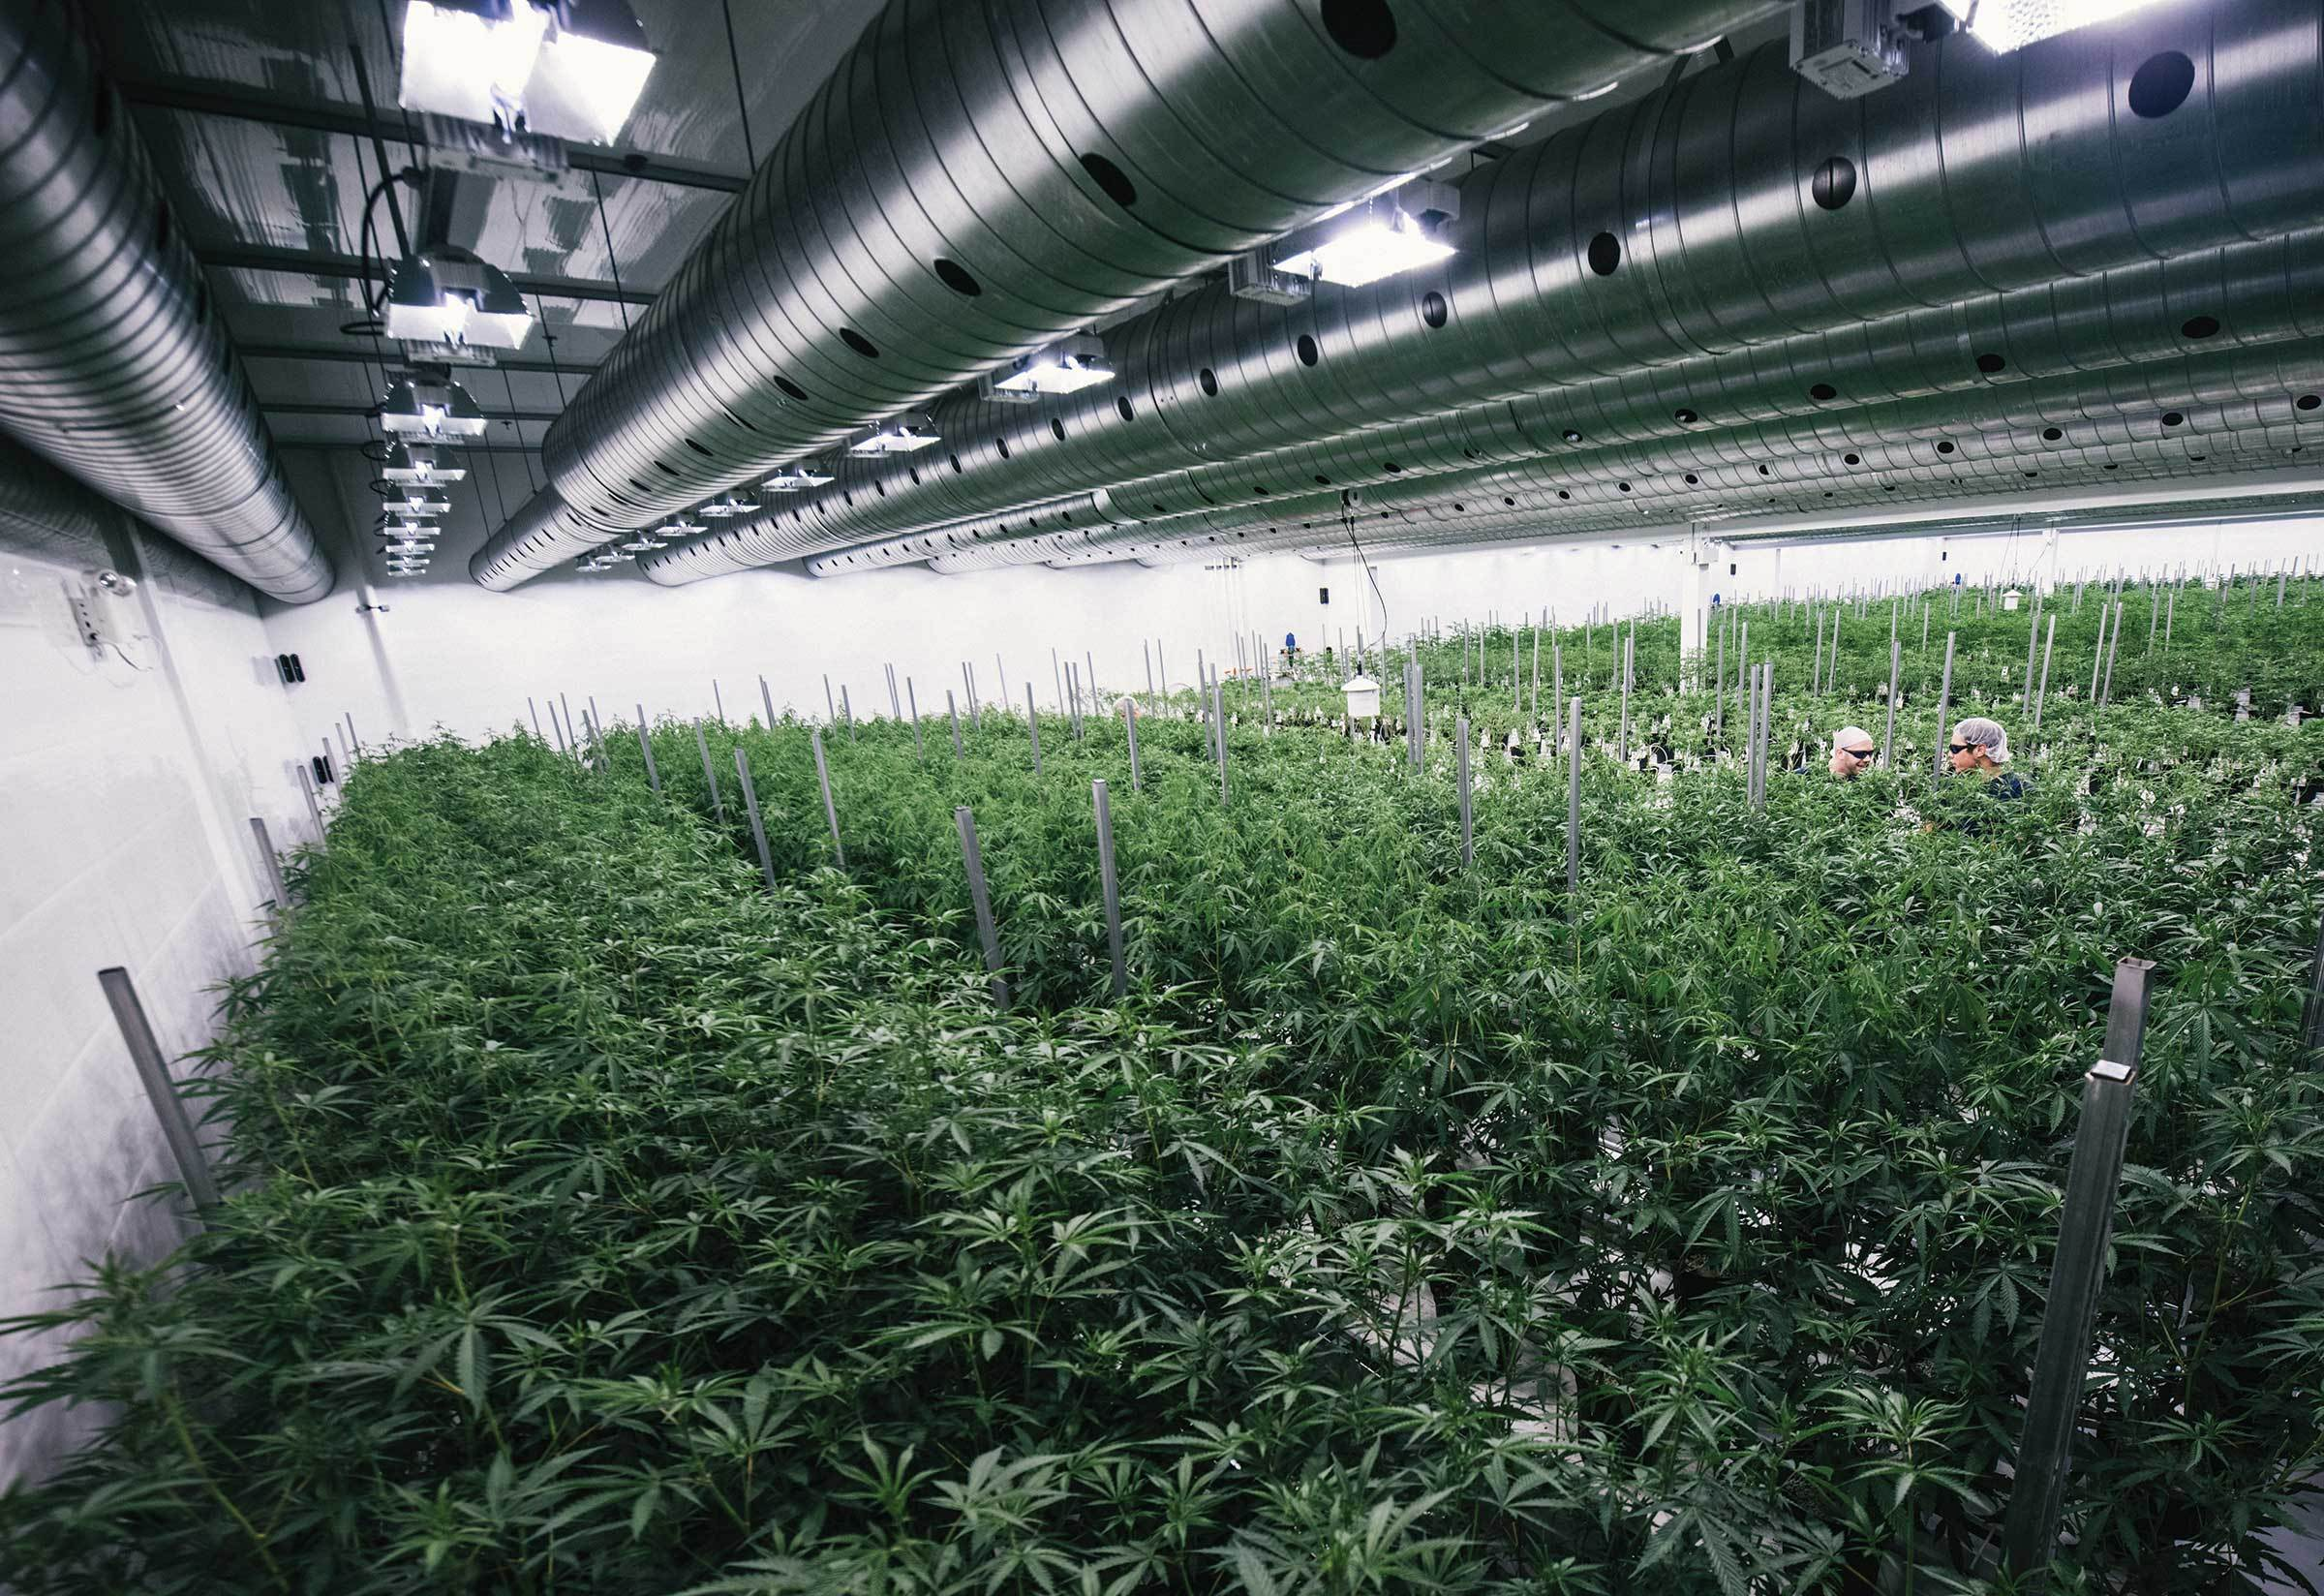 Canopy Growth (TSX:WEED) says it will retain 40 per cent of Agripharm and the rest will be owned by Green House Holdings North America Inc. and its affiliate in the Netherlands, which does business as Organa Brands. (Photo: www.canopygrowth.com)